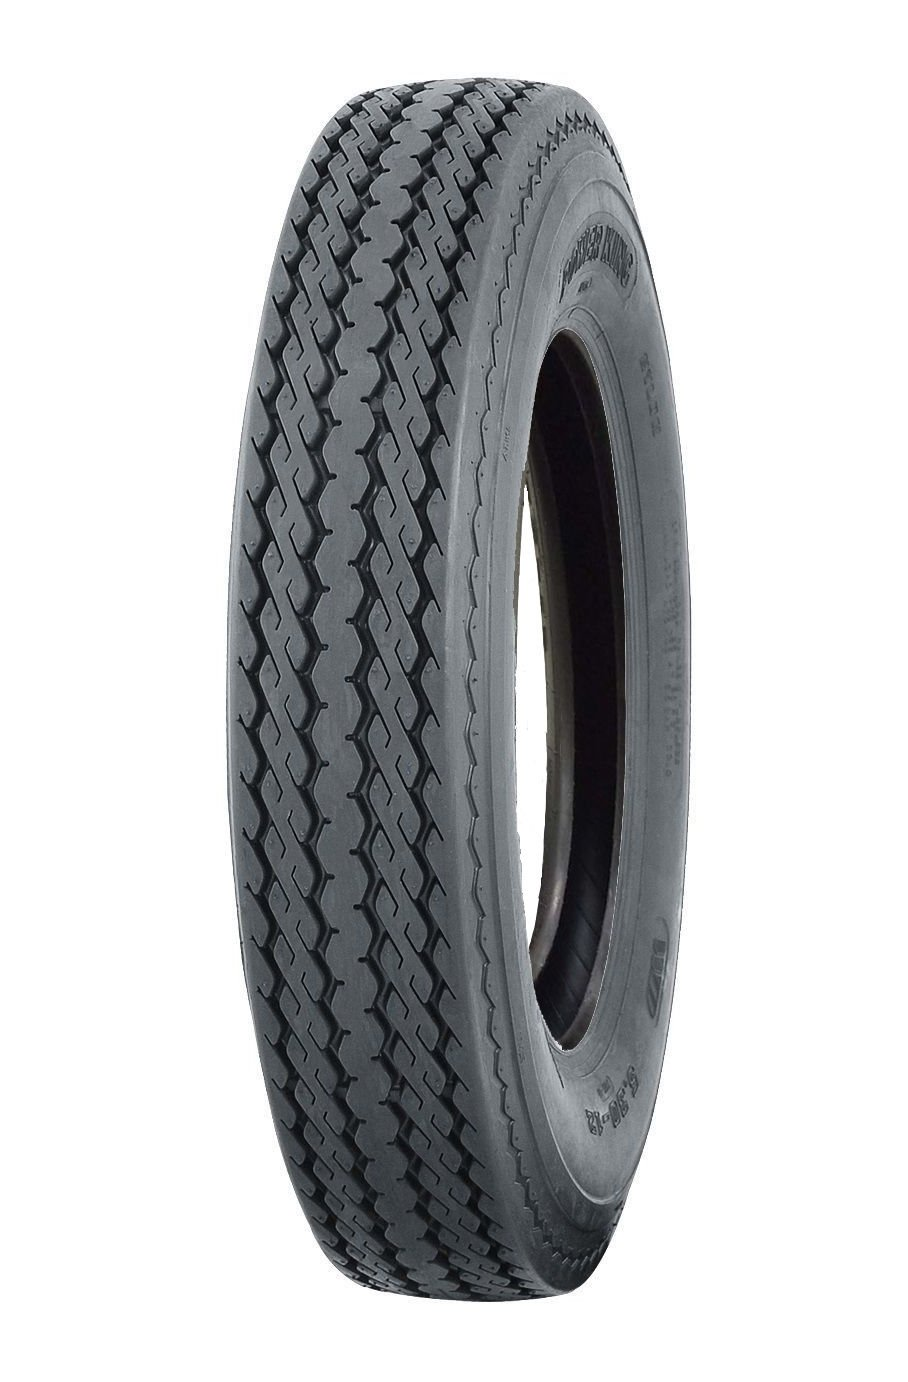 Get Quotations One New Boat Trailer Tire 5 30 12 30x12 6pr Load Range C 11033